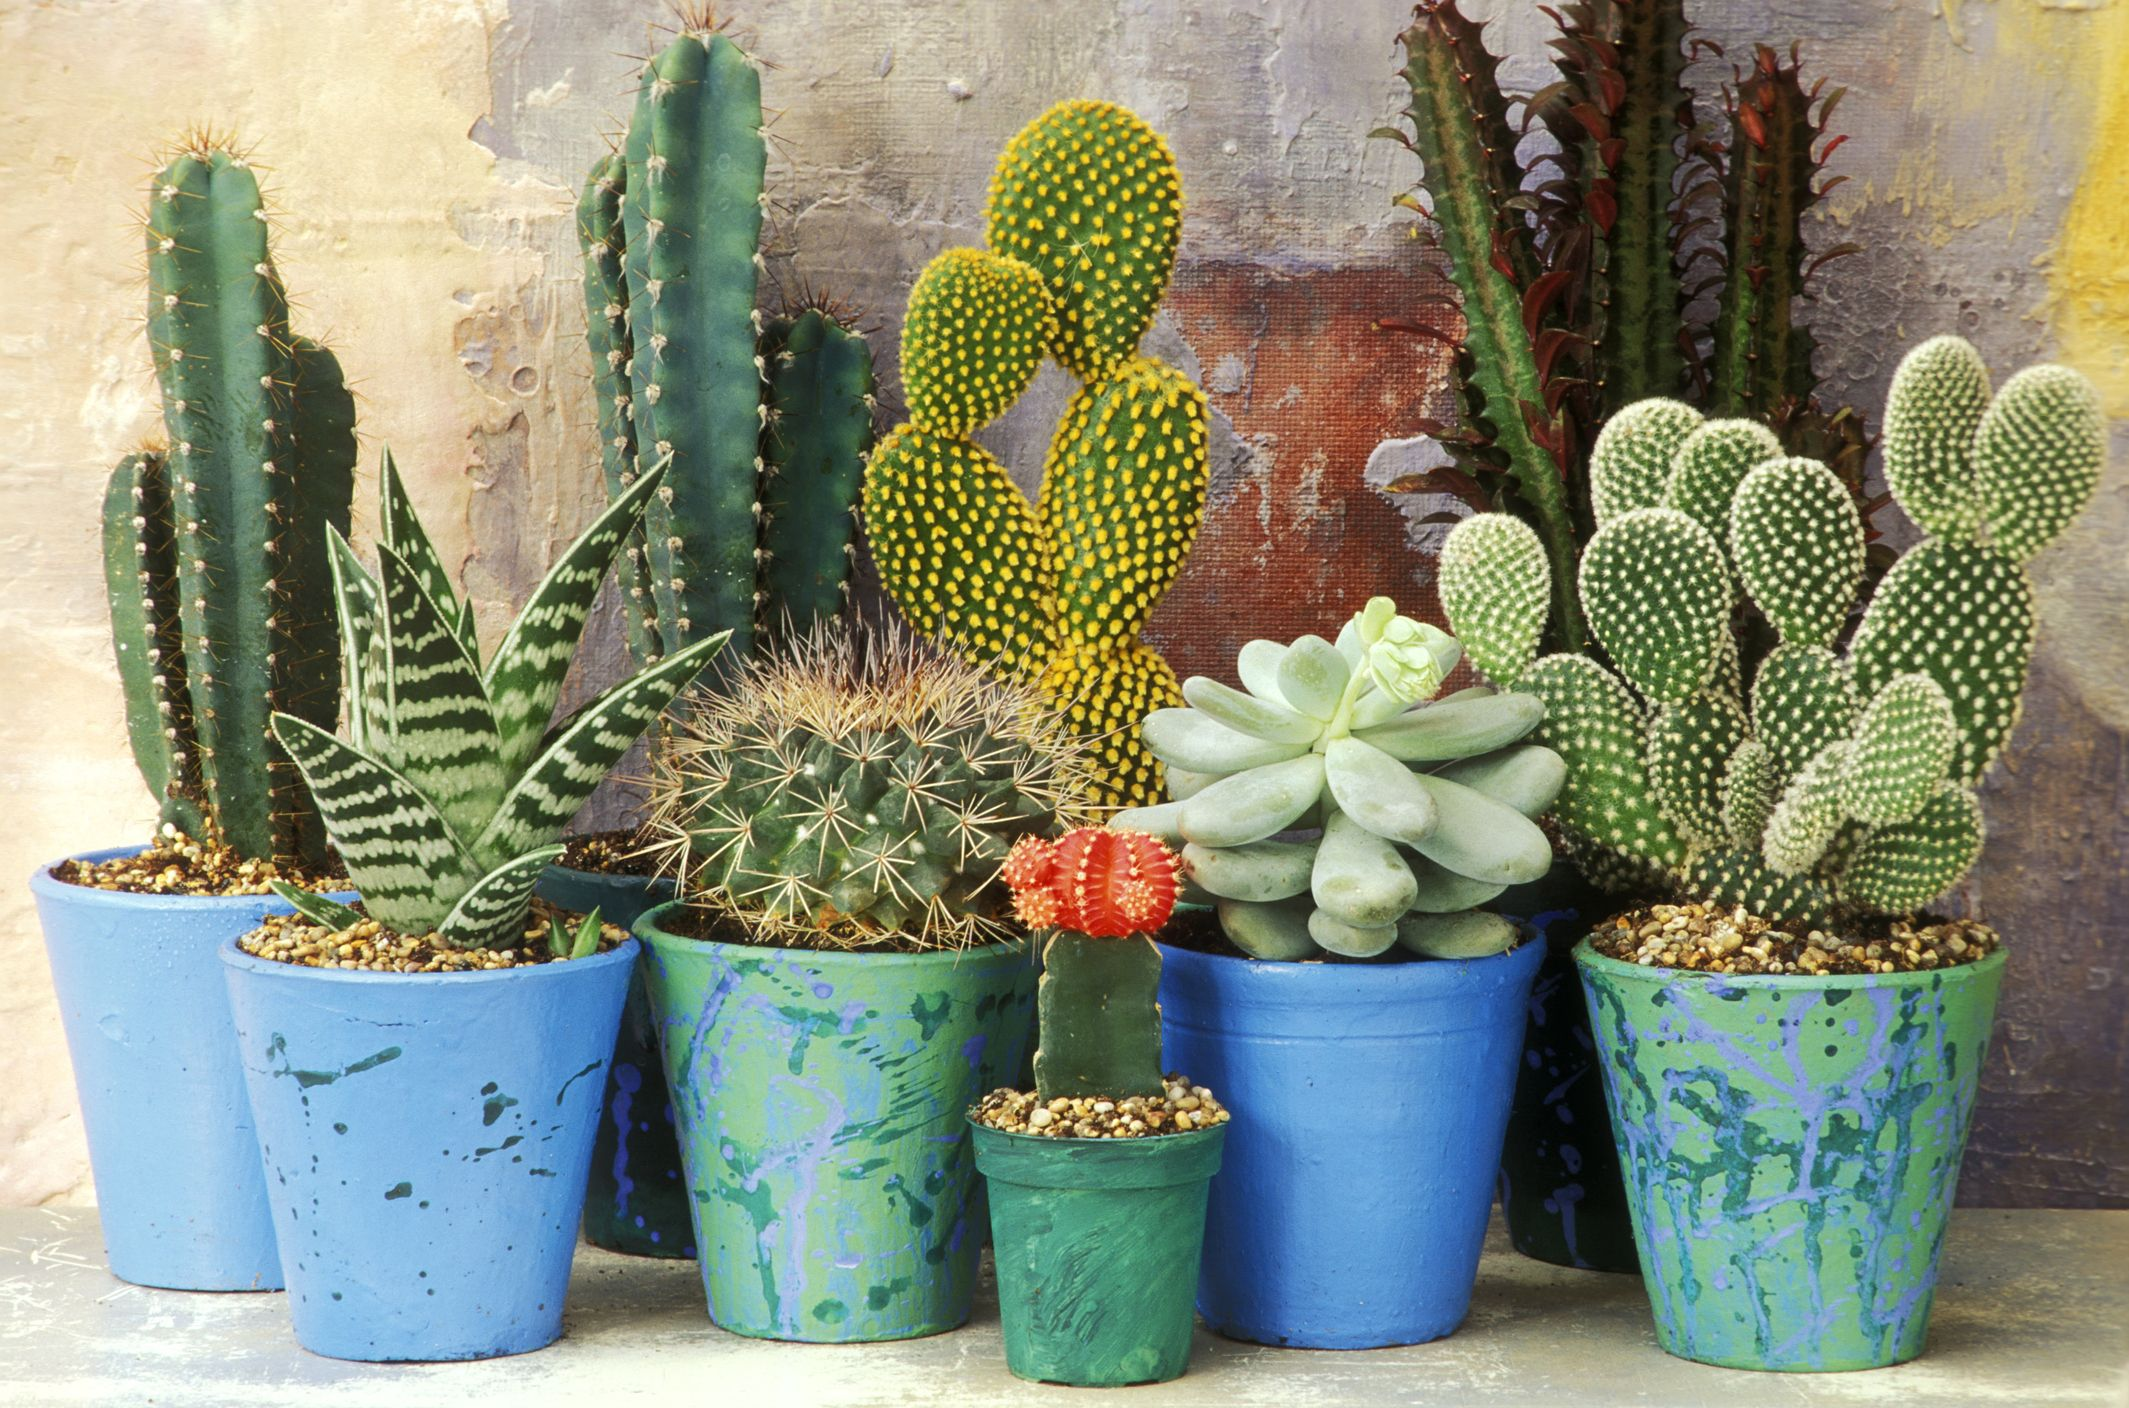 Cactus Plants - 7 Things To Know About Cacti